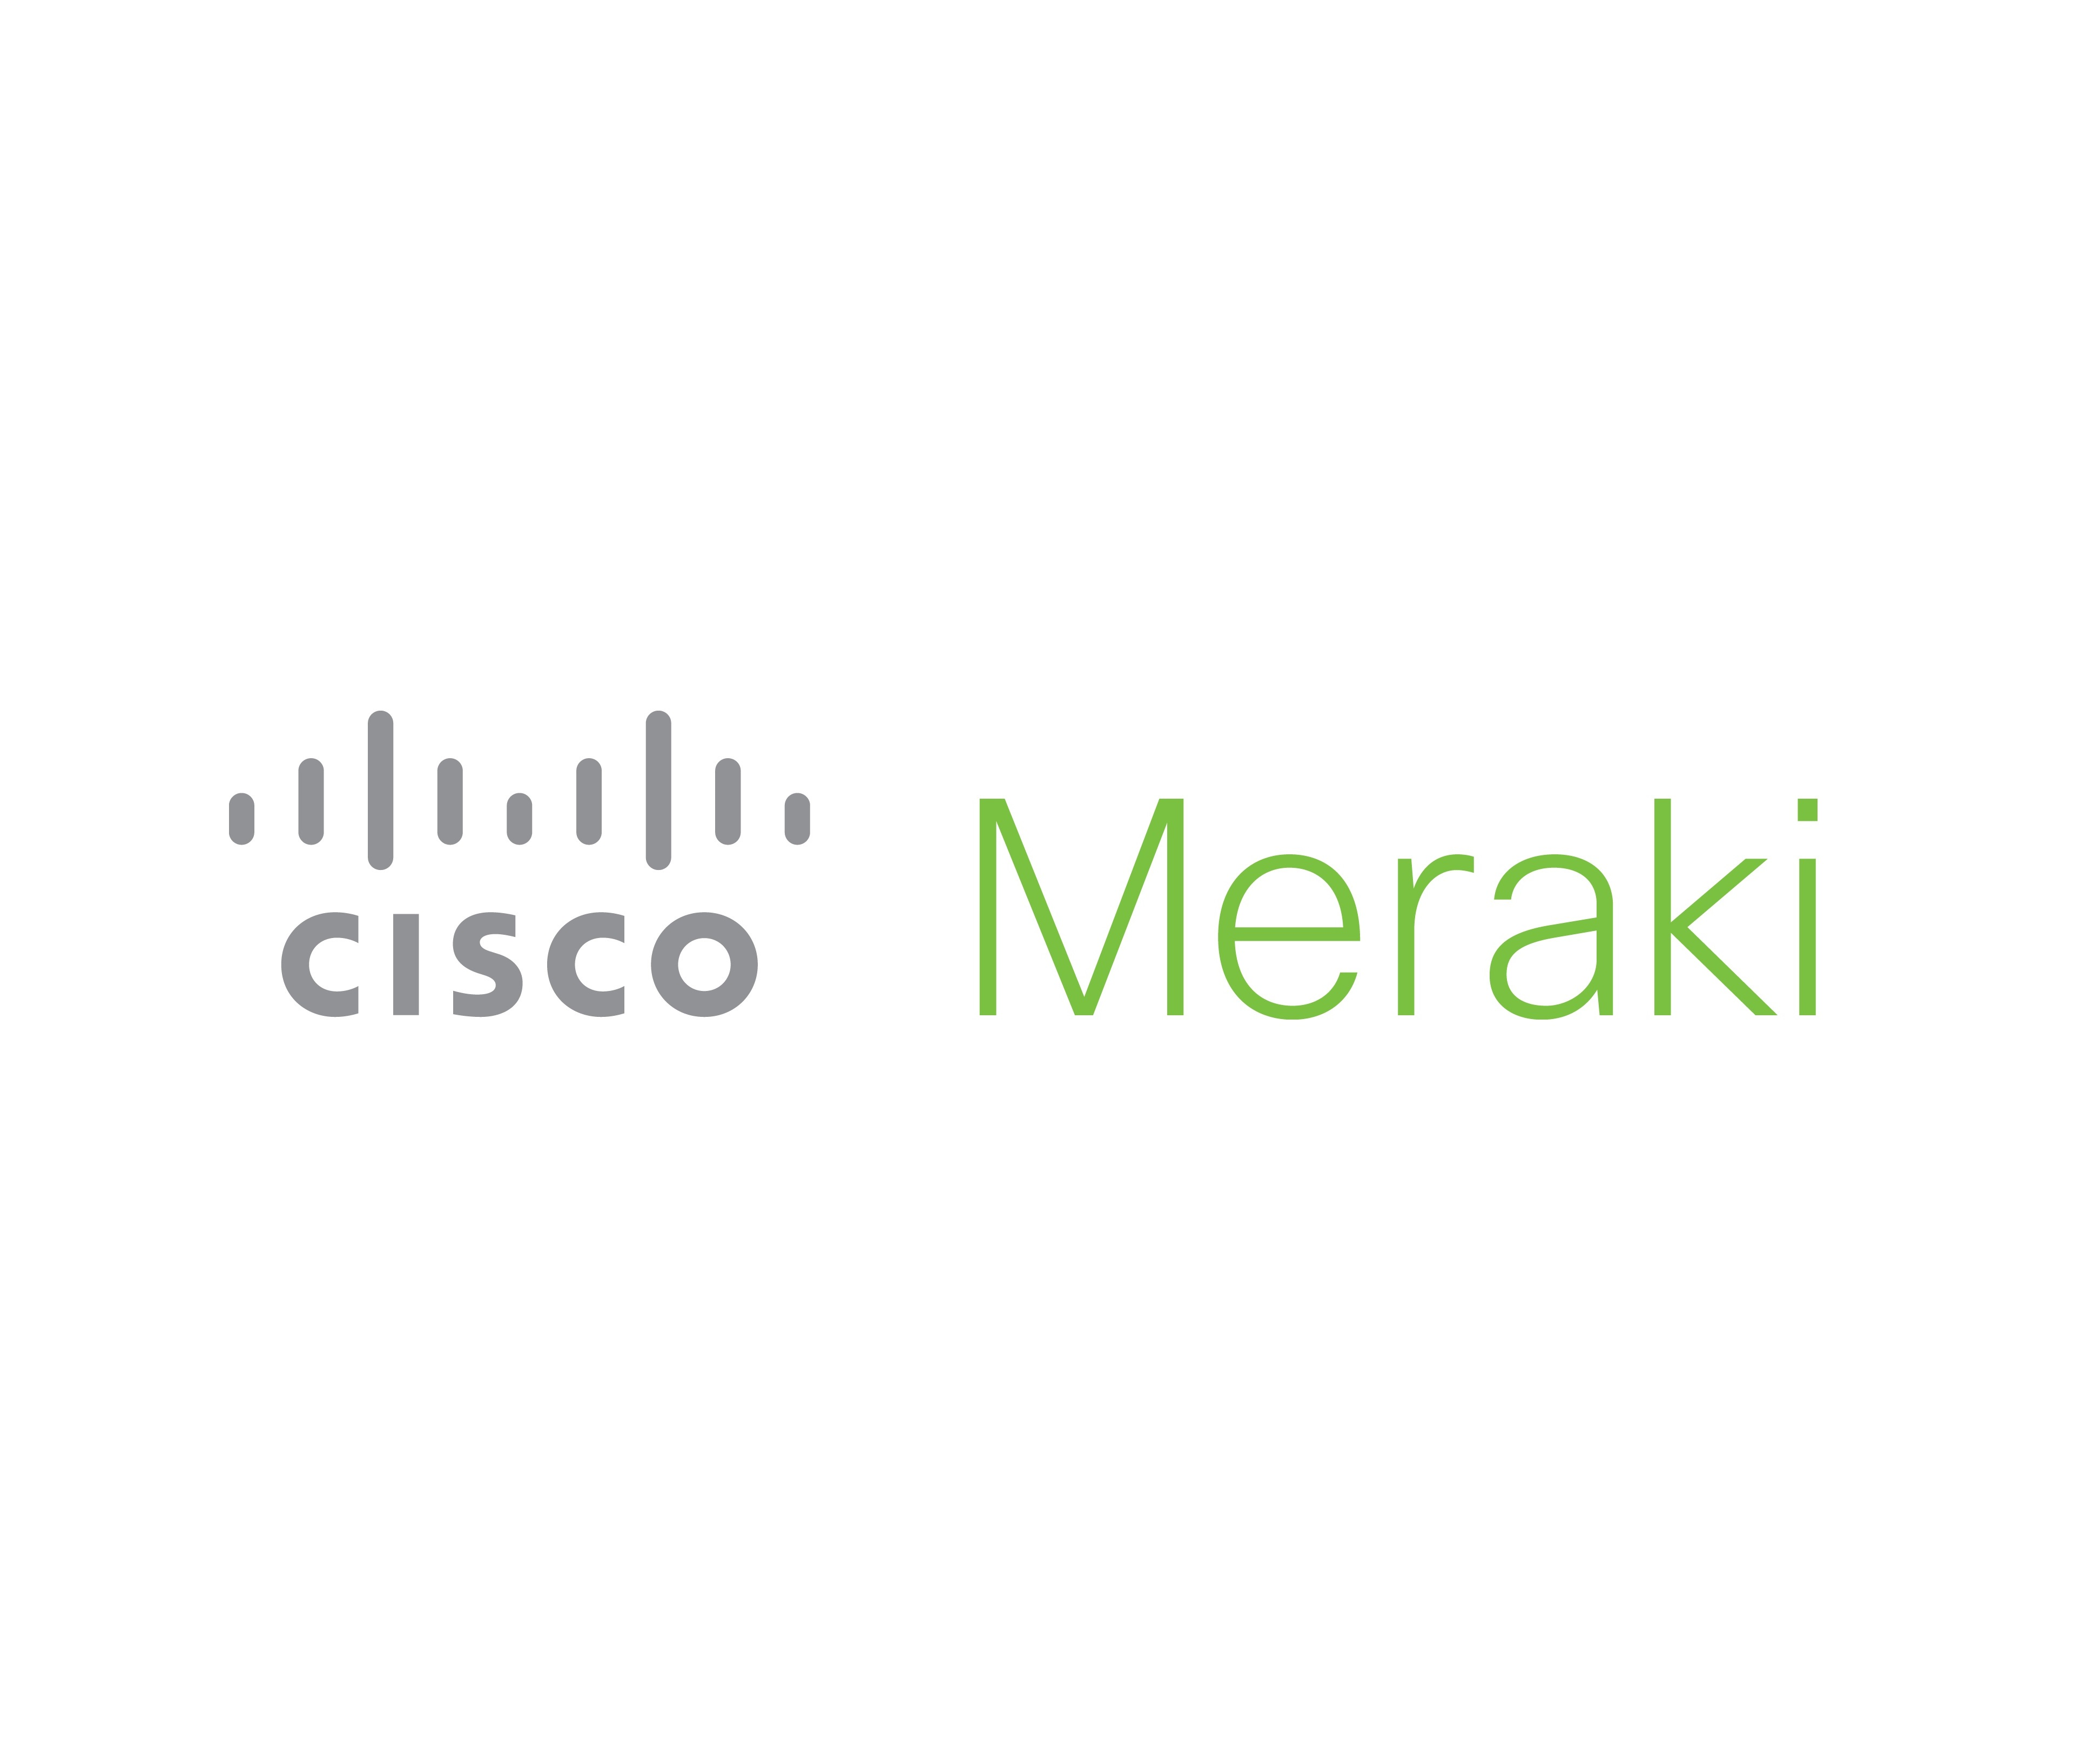 cisco-meraki-logo.jpg